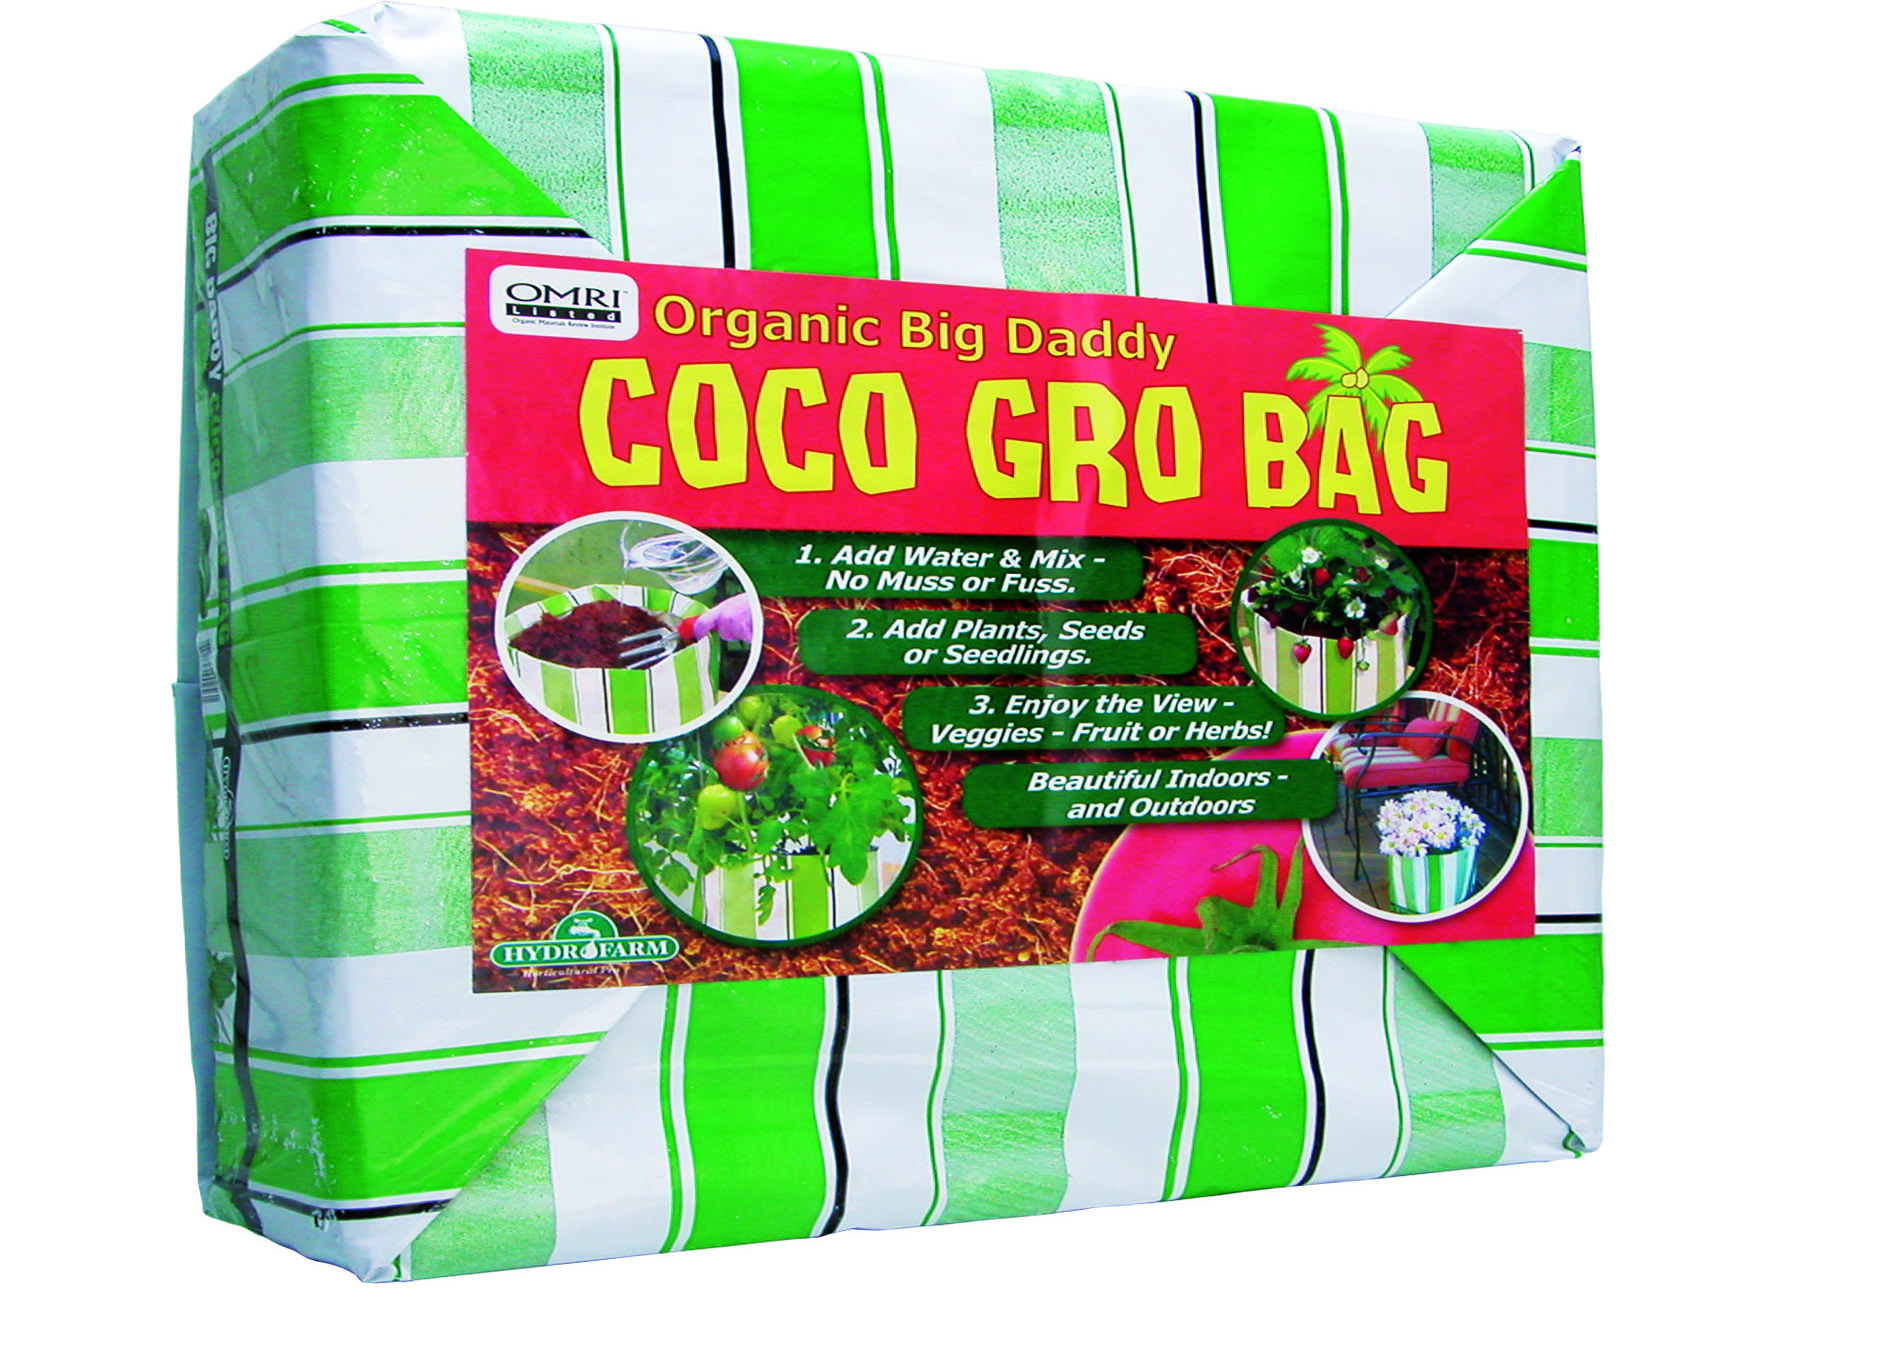 The big daddy organic coco gro bag aquaponic lynx llc for Bubblemac aeration products